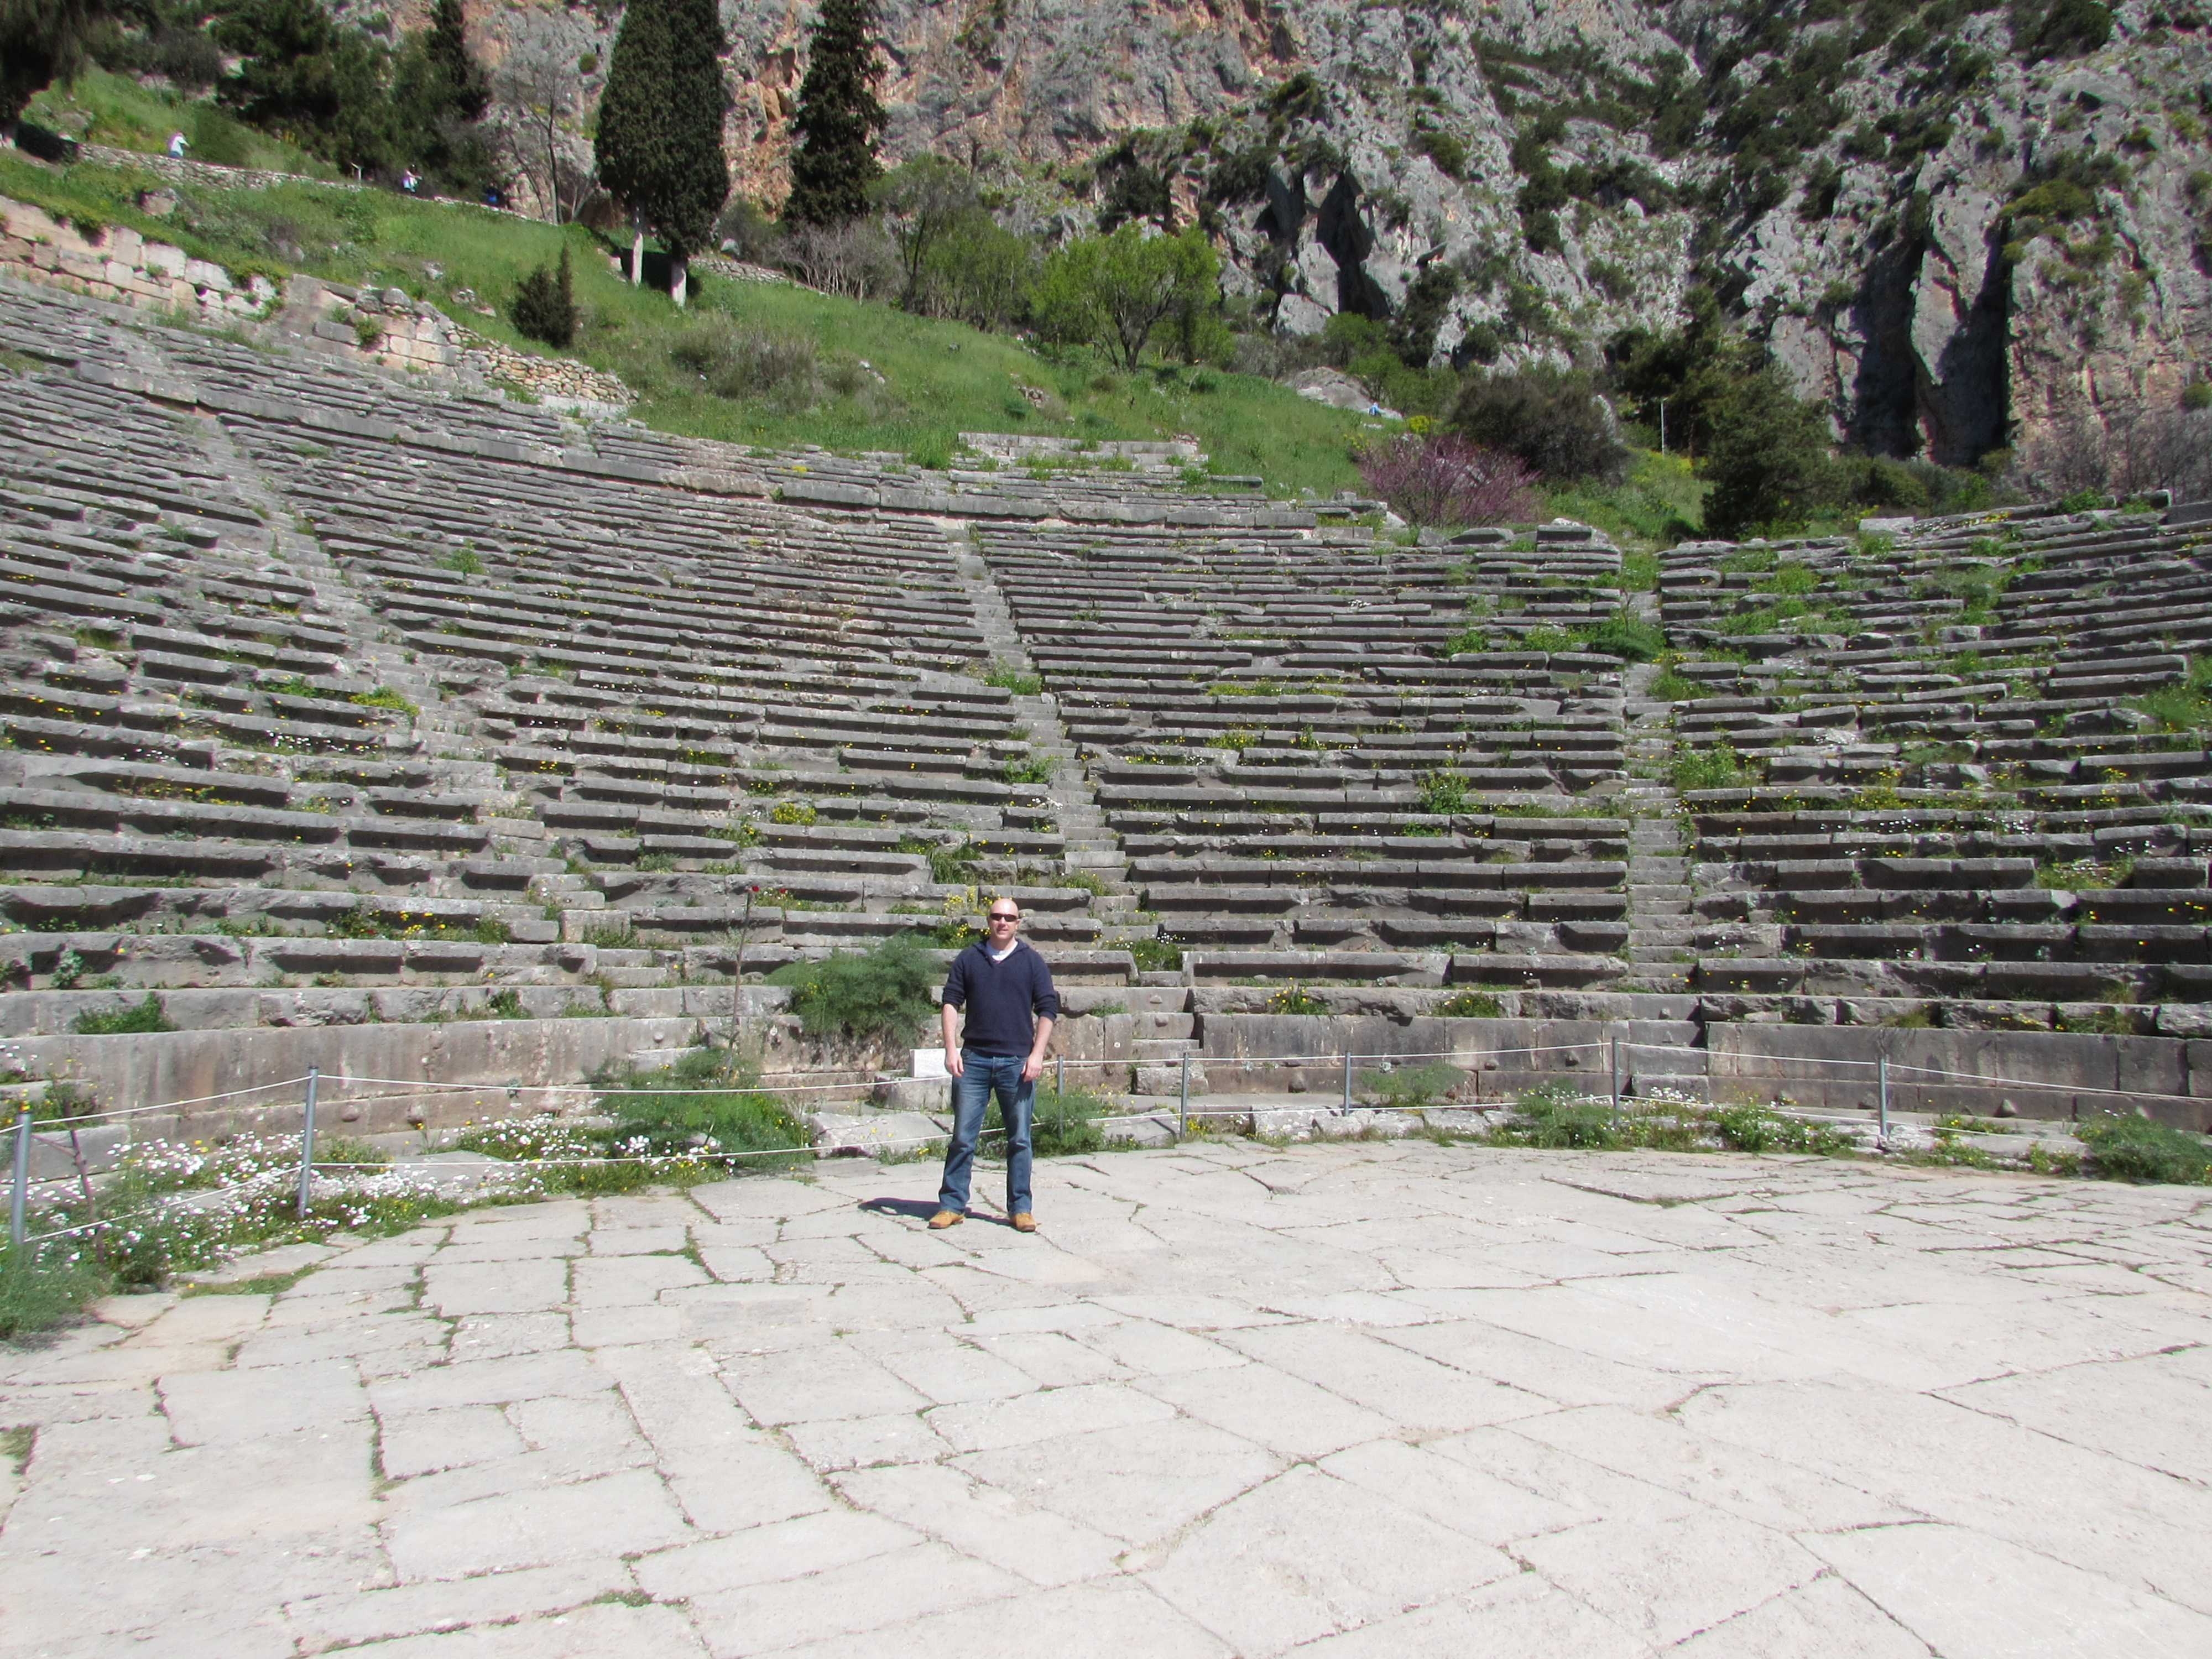 daves-travel-pages-delphi-greece